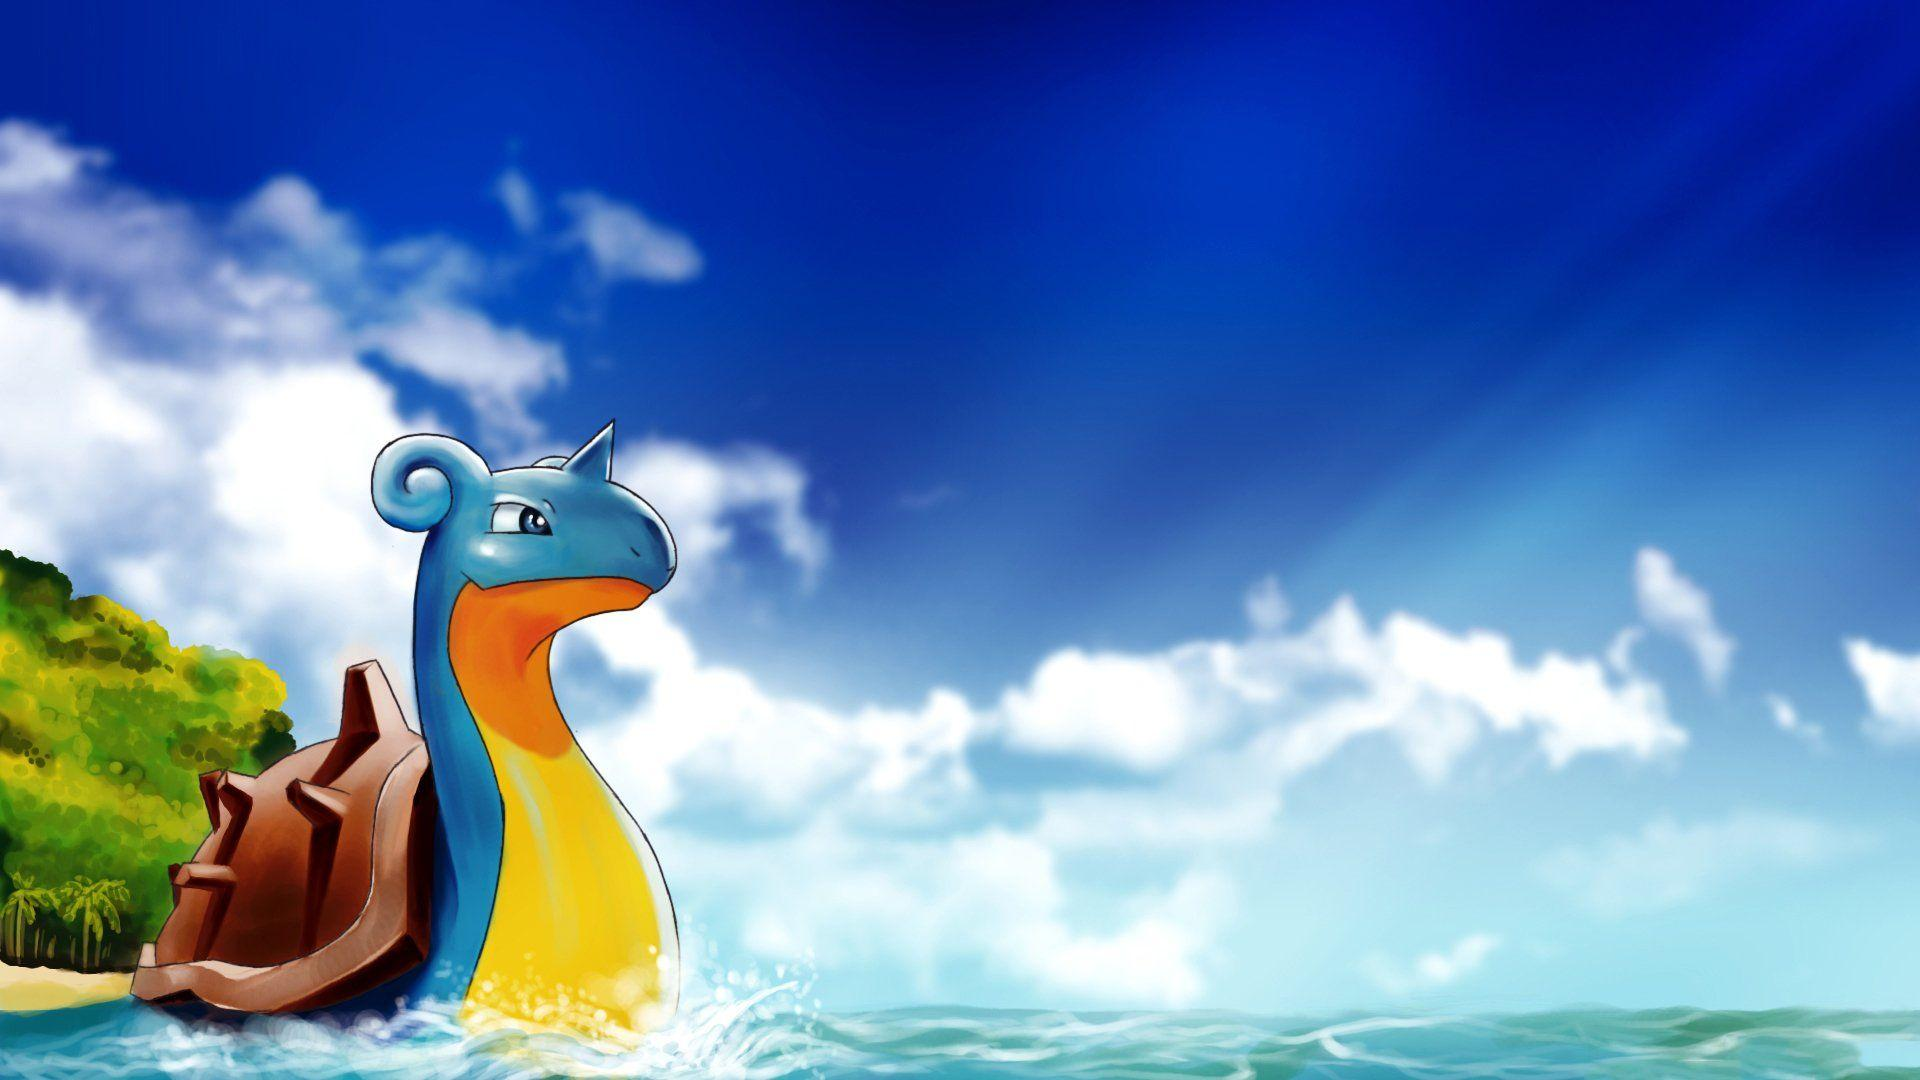 Lapras Full HD Wallpapers and Backgrounds Image